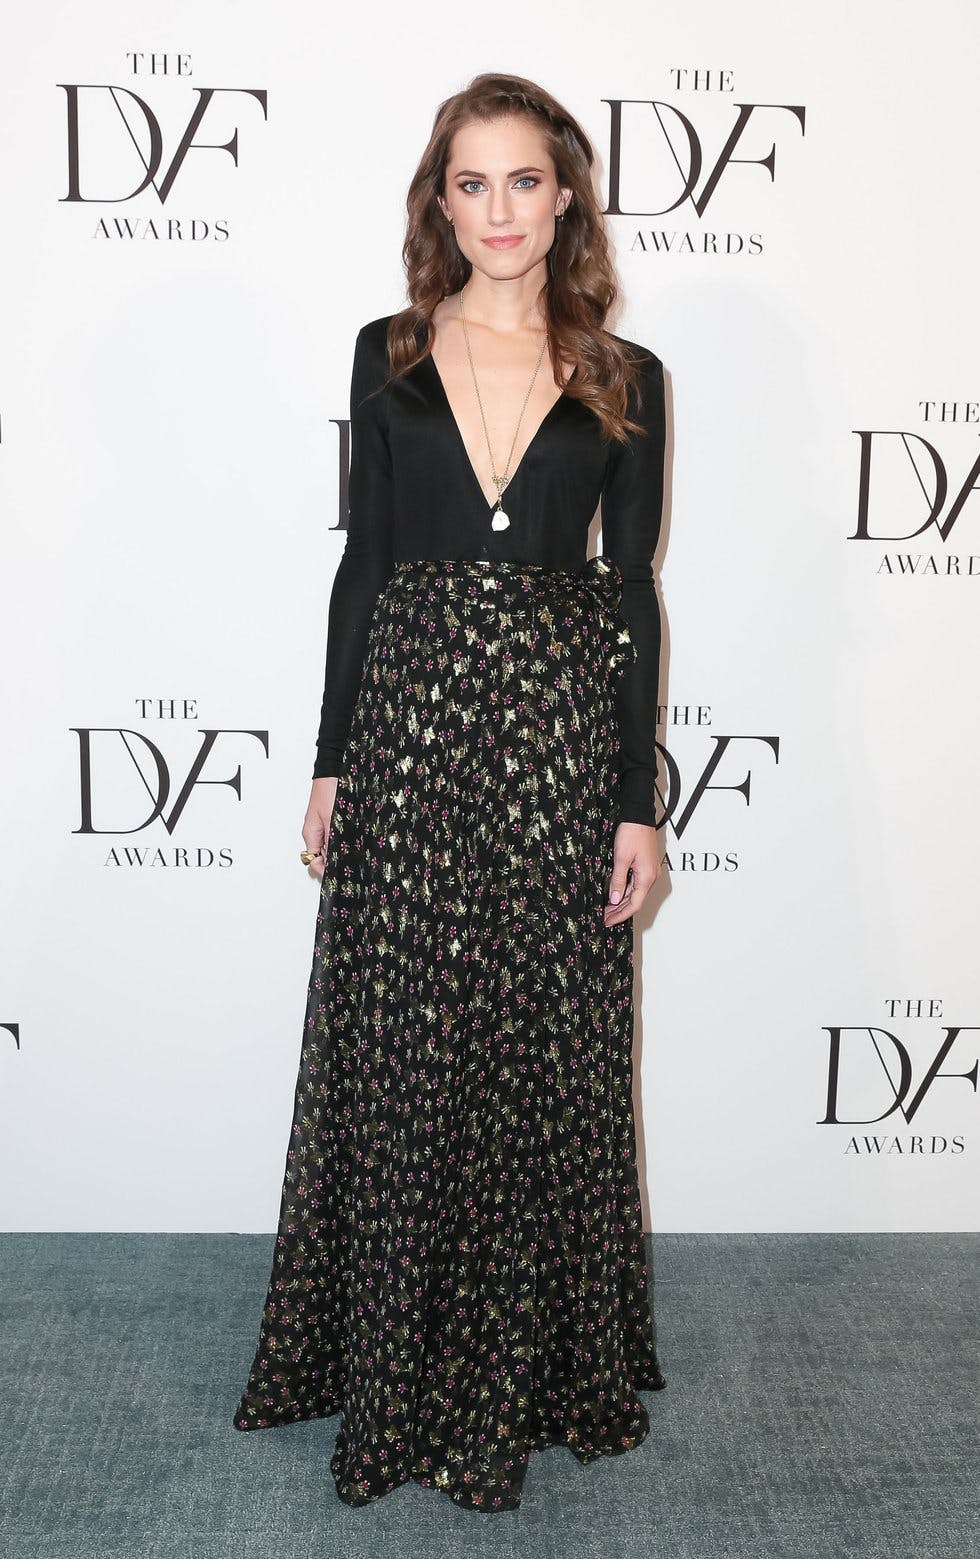 aad4516659 The Girls star turns heads in a plunging black long sleeve top and black  and gold printed maxi skirt both by Diane Von Furstenberg accessorised with  a long ...